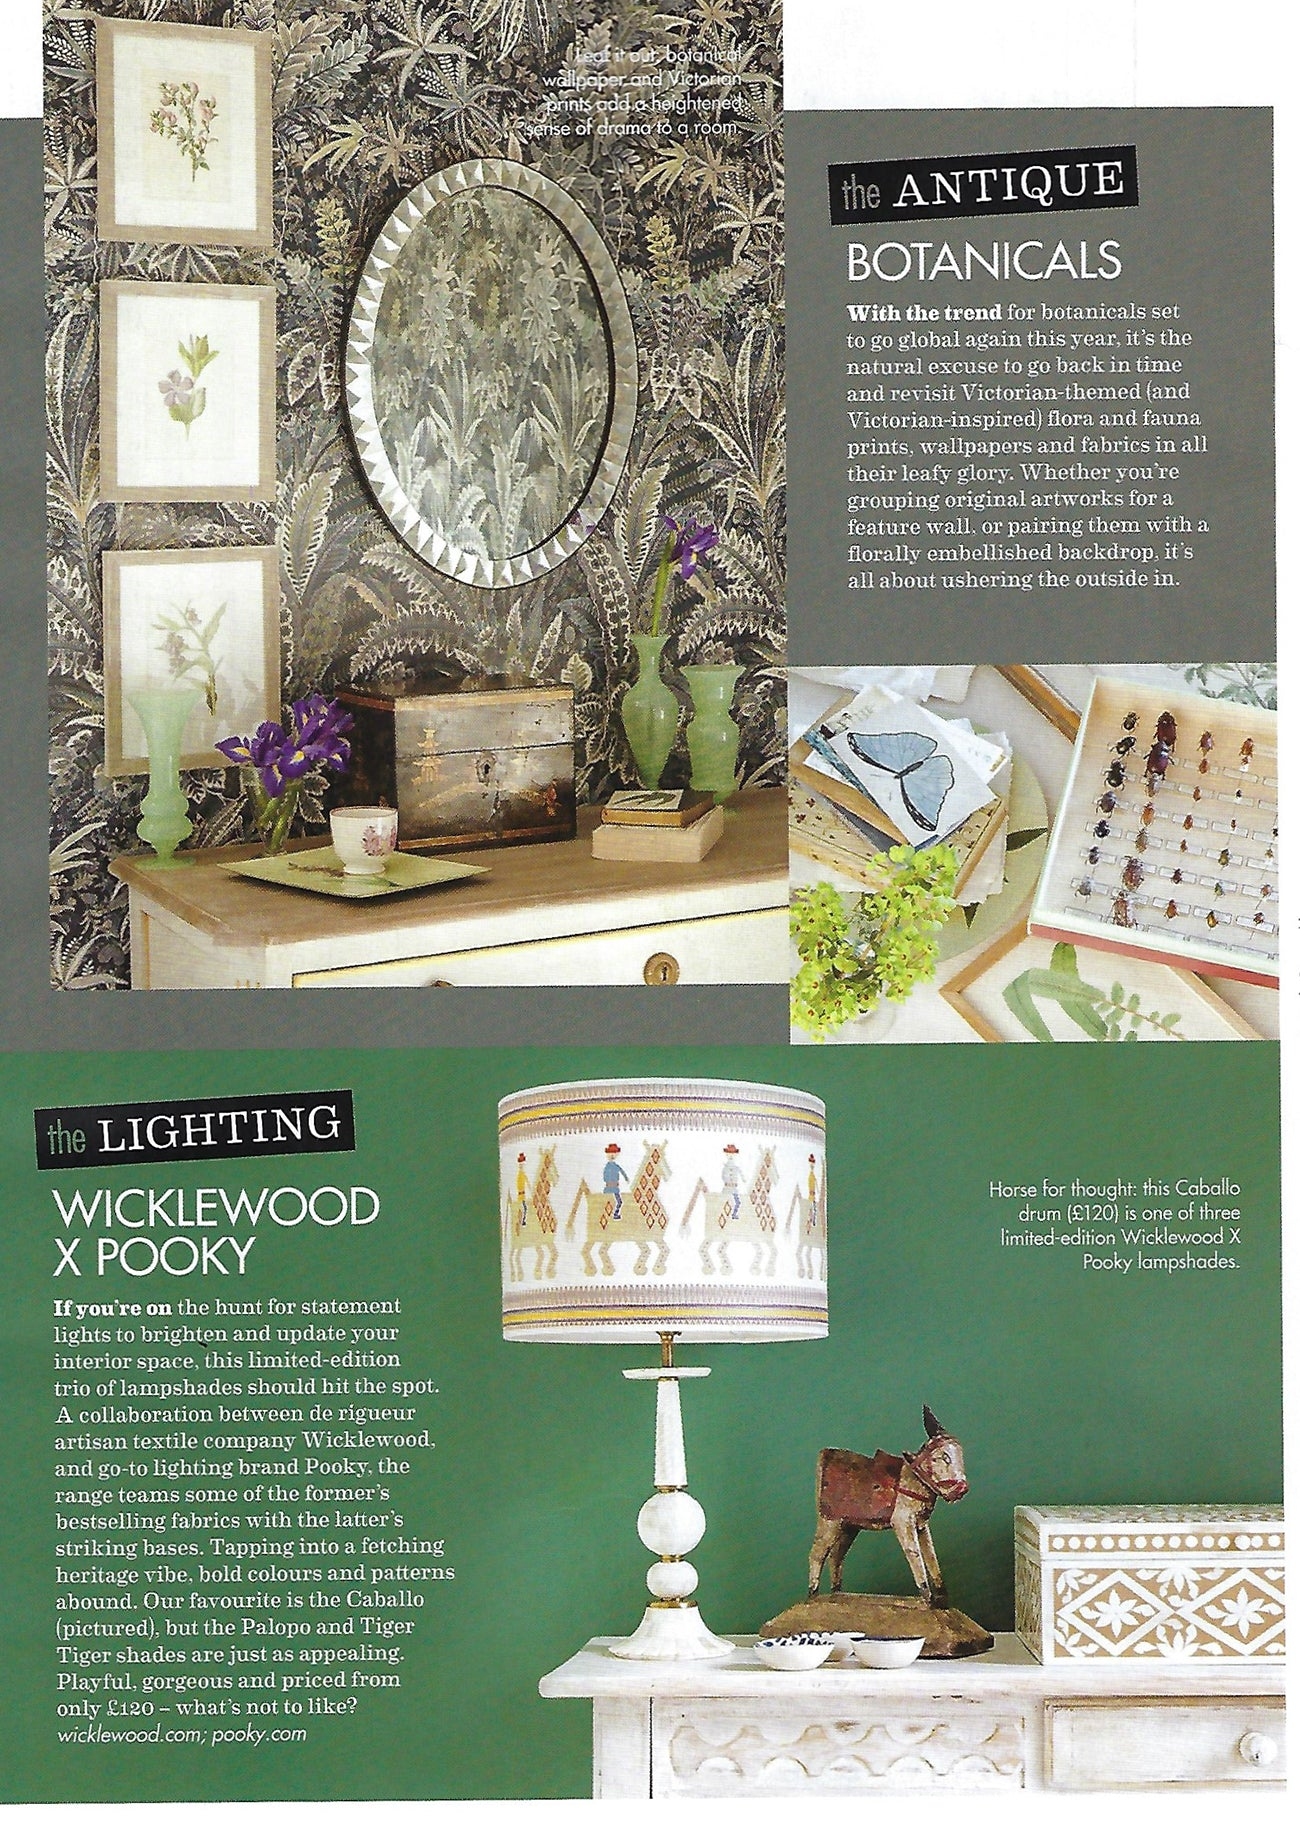 Homes & Antiques March 2019 features Wicklewood lampshades in collaboration with Pooky